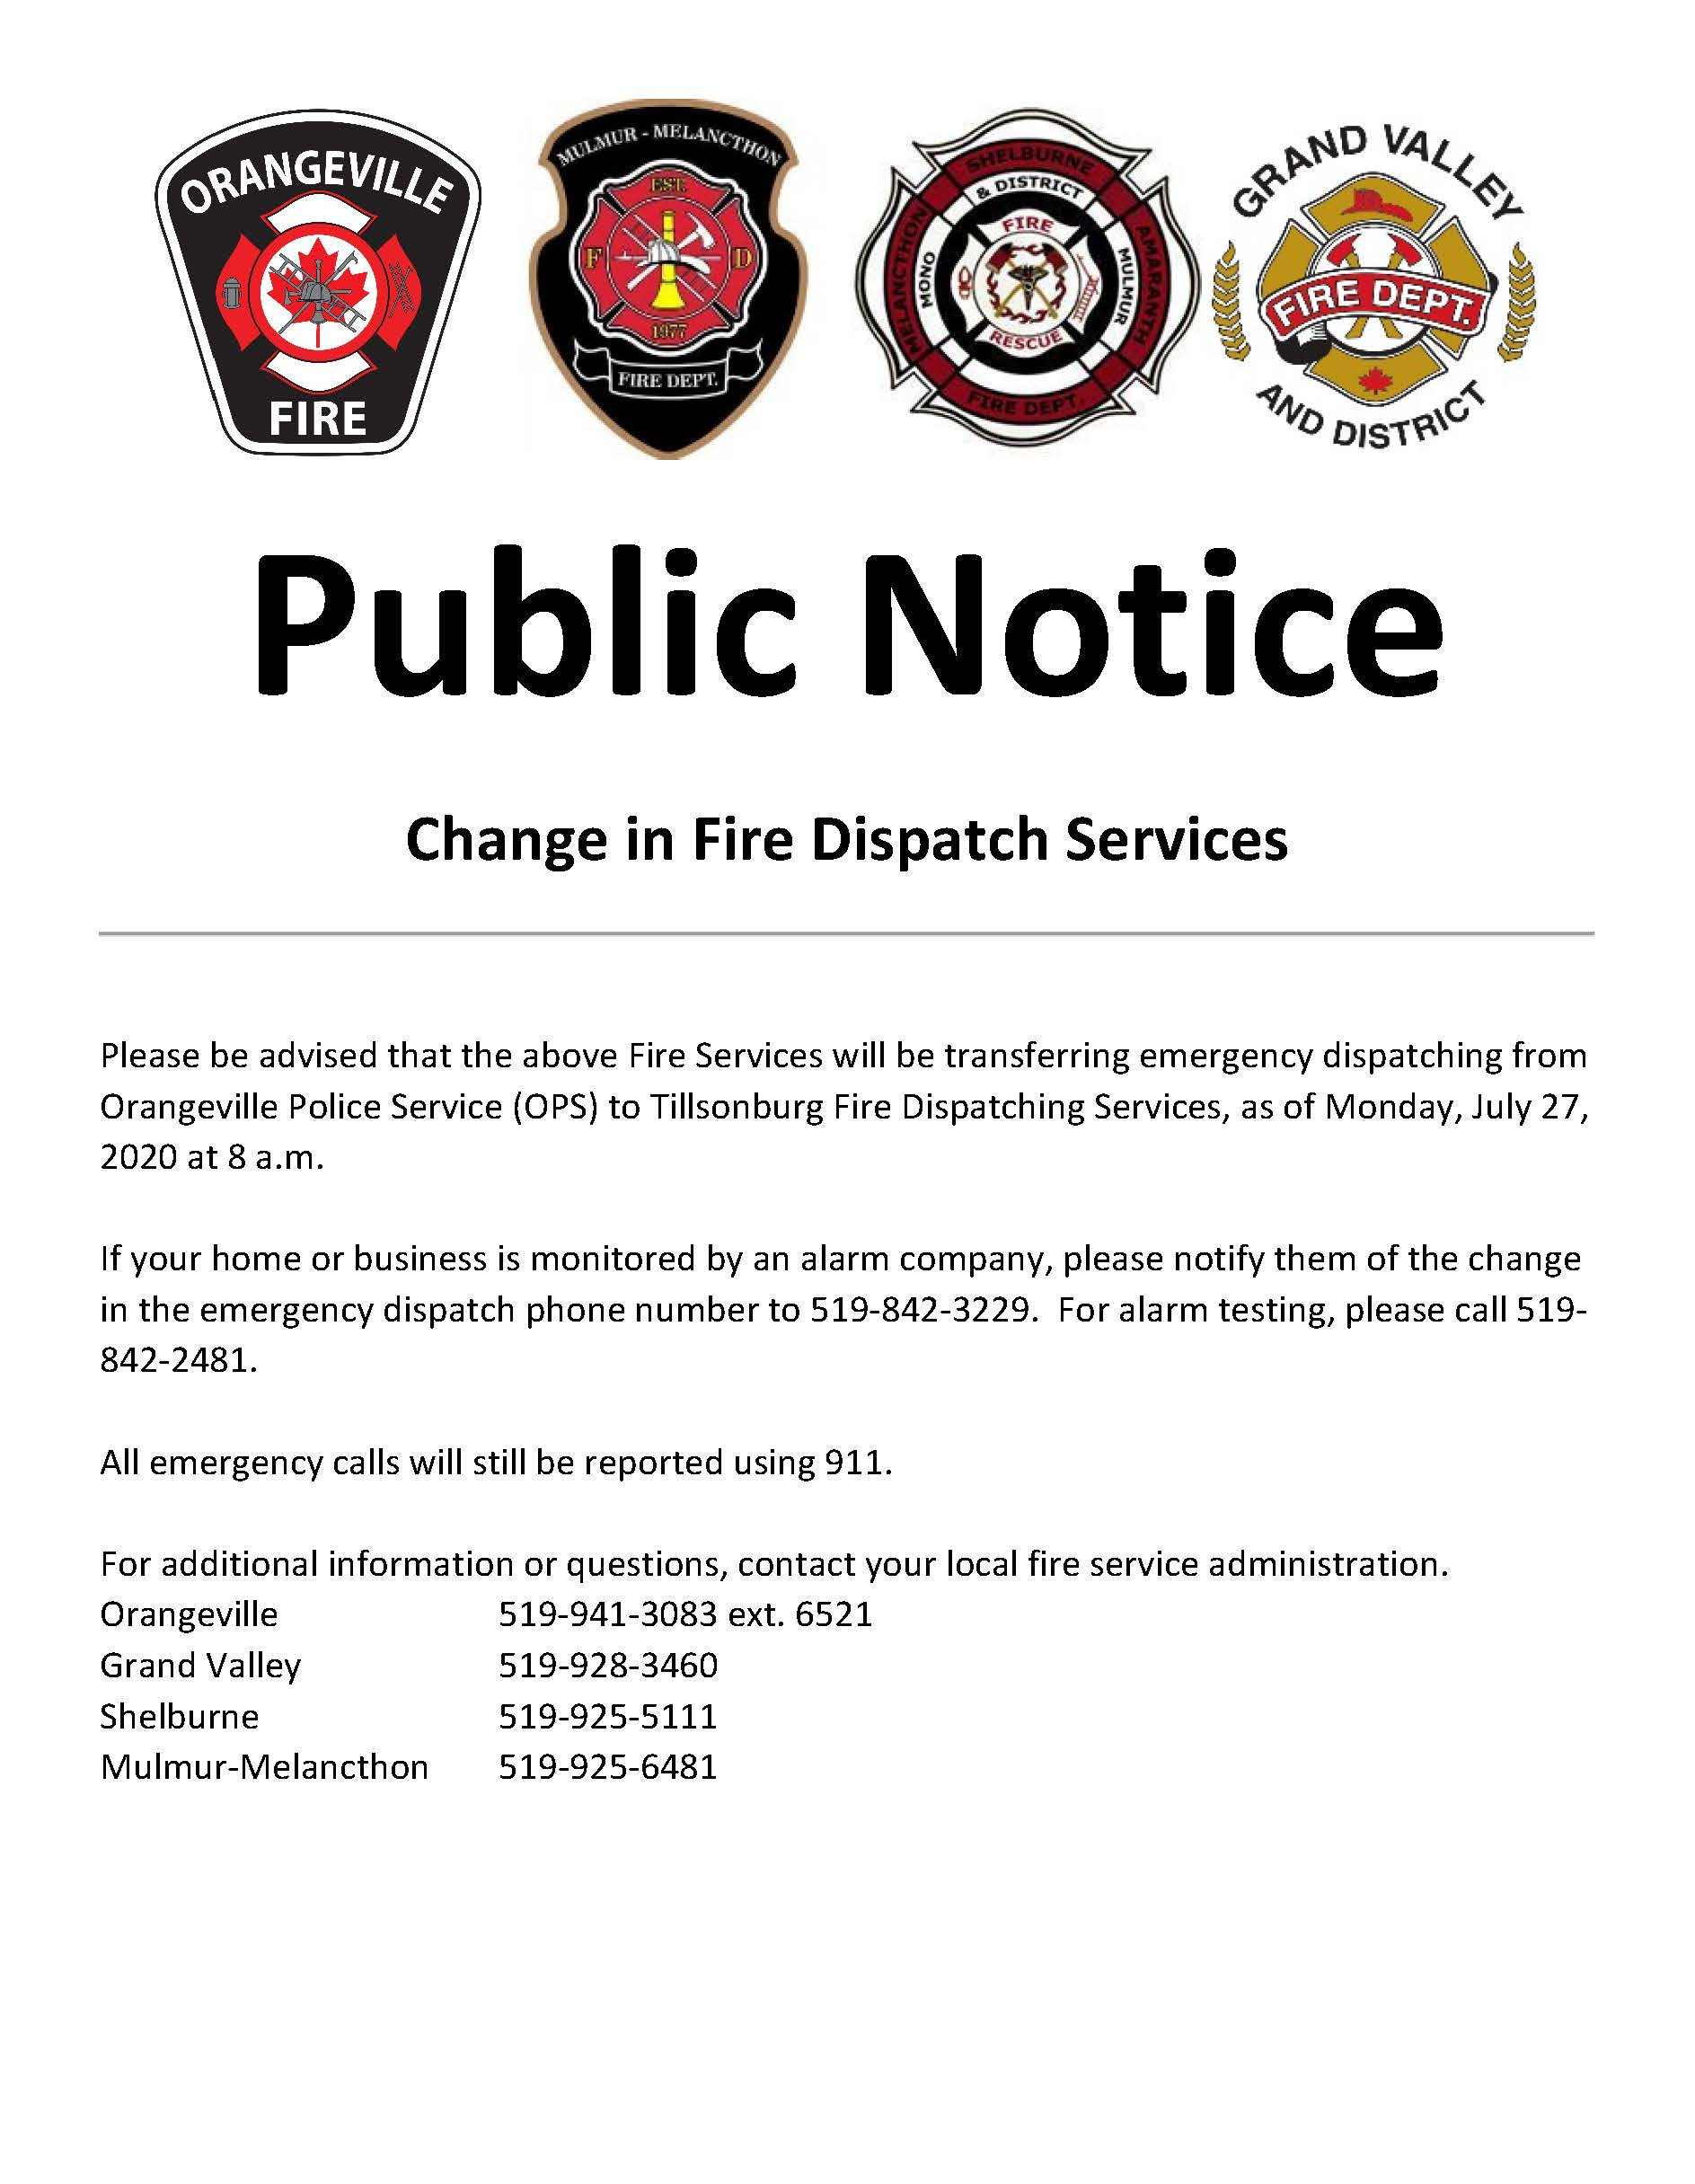 Fire Dispatch Public Notice Image with .pdf download link